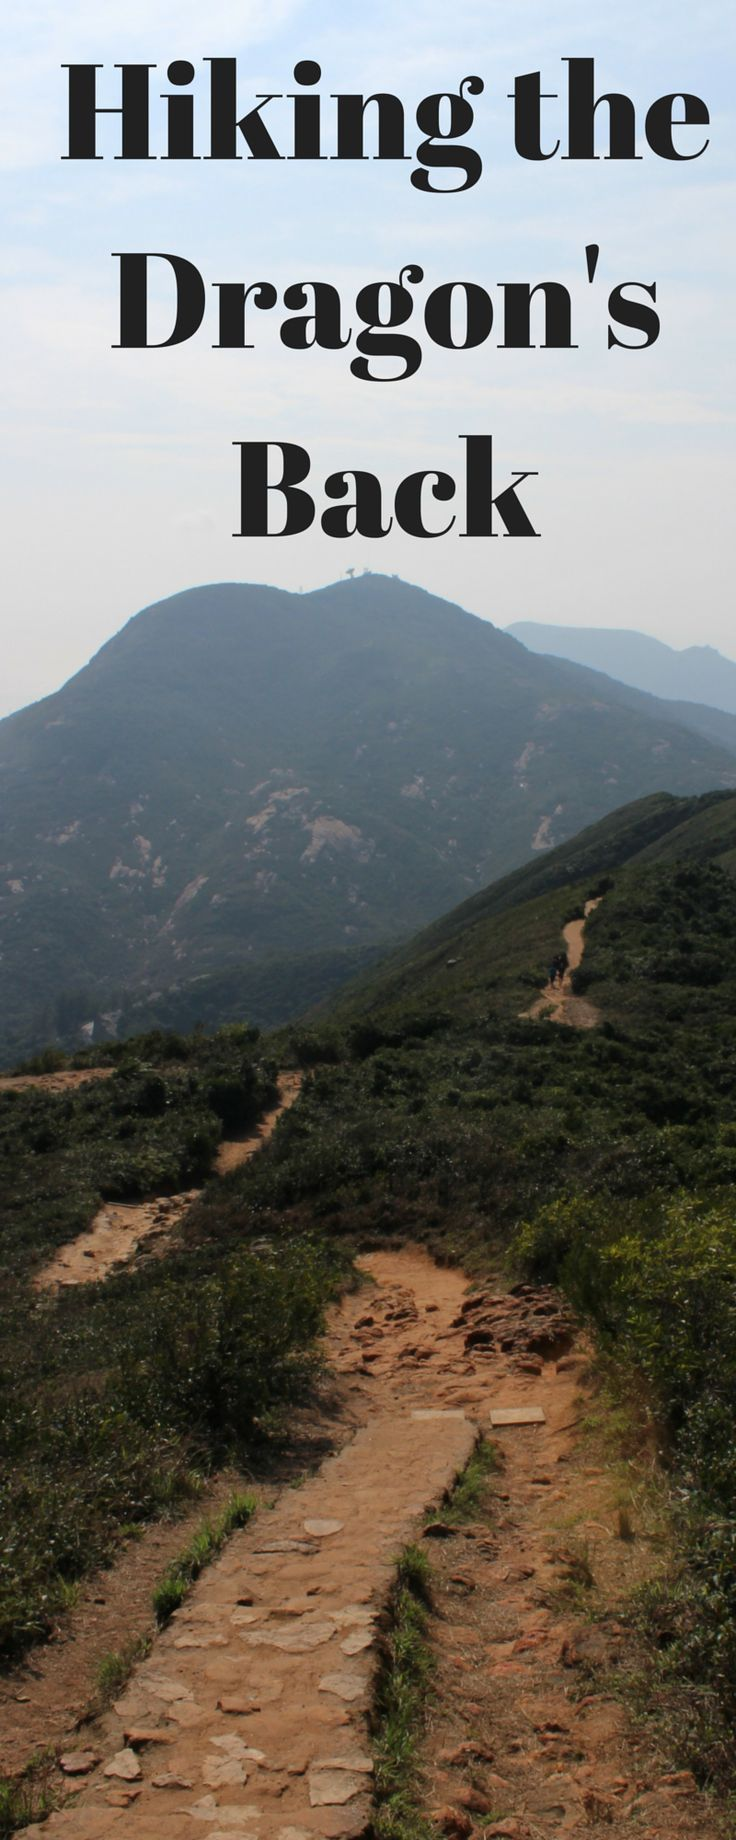 Want a day away from the hustle and bustle of Hong Kong city and want to do a hike with some breathtaking scenes and chill out on a beach afterwards? The Dragon's Back trail and the village of Shek-O certainly has it all and this is my guide plus findings on this amazing day out.